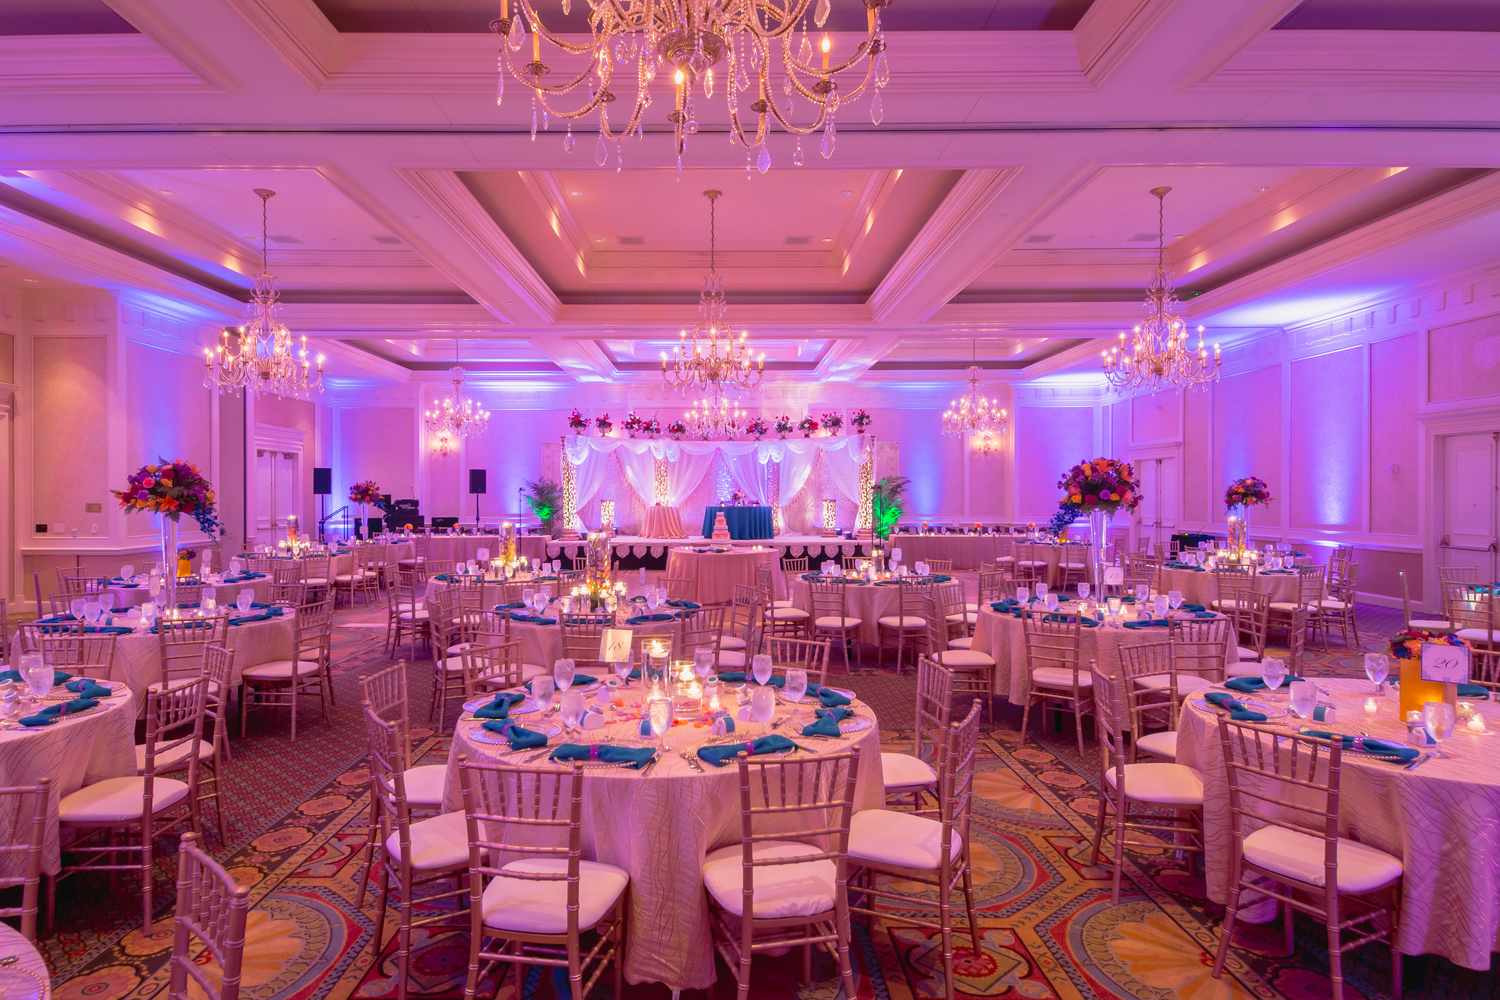 Elegant Hindu wedding reception